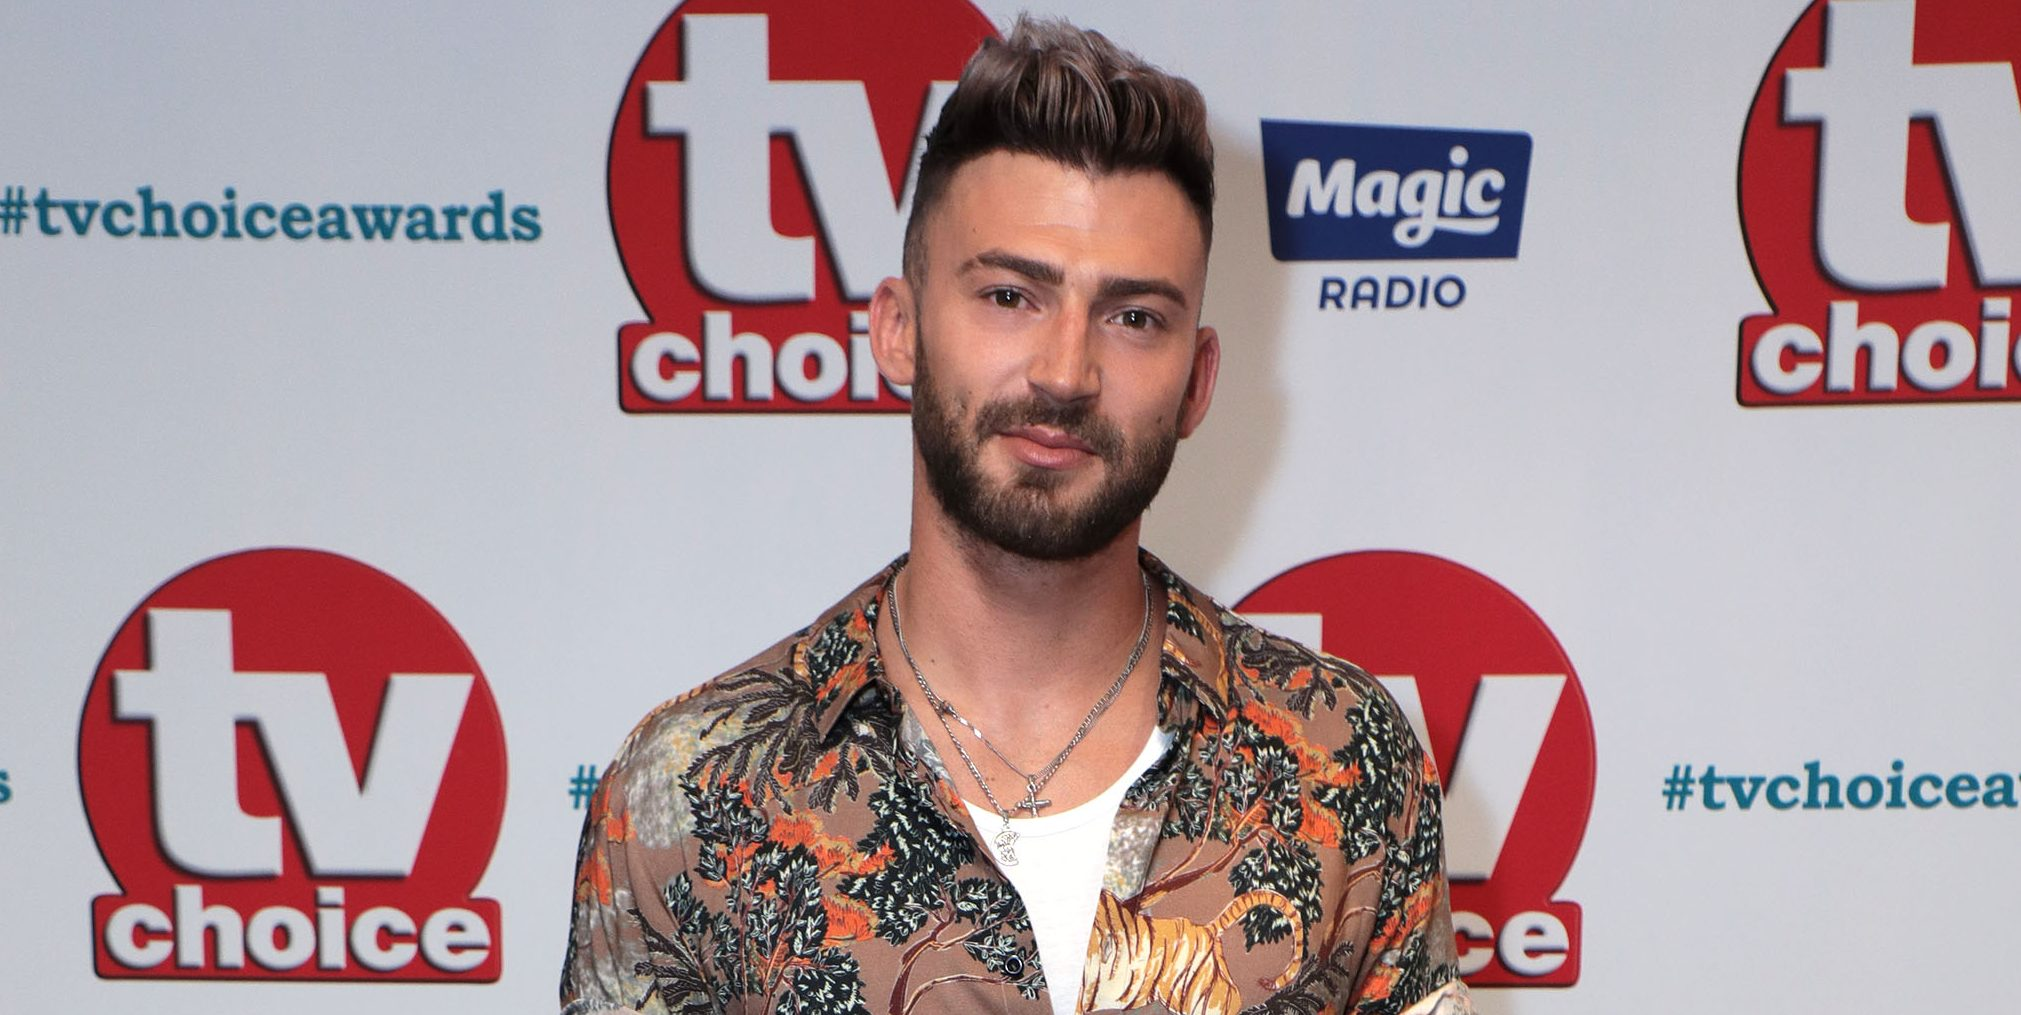 Former Dancing On Ice champion Jake Quickenden's Hollyoaks role confirmed